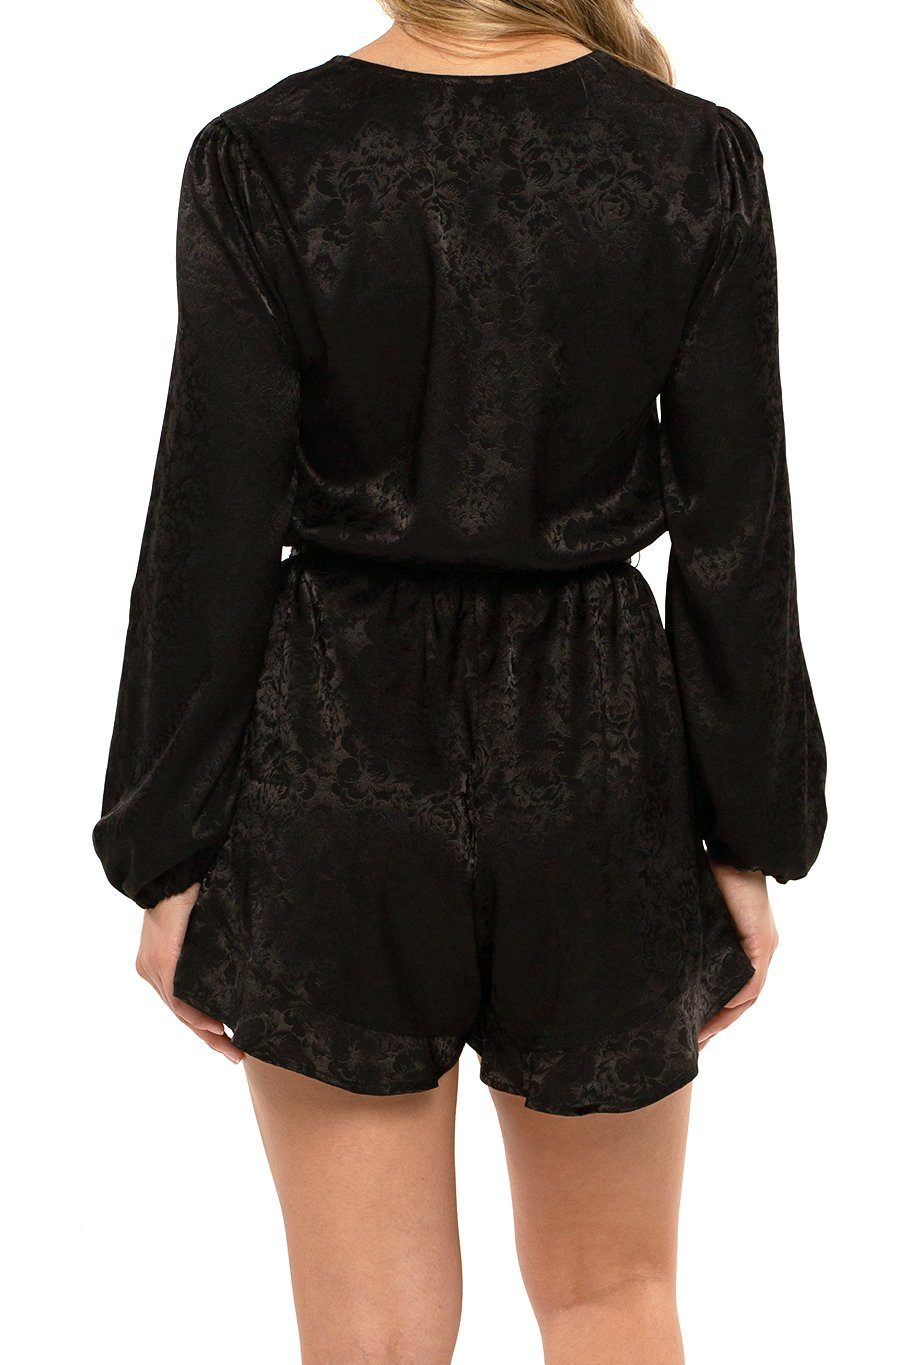 Rendezvous Romper - Black Rose - Shore